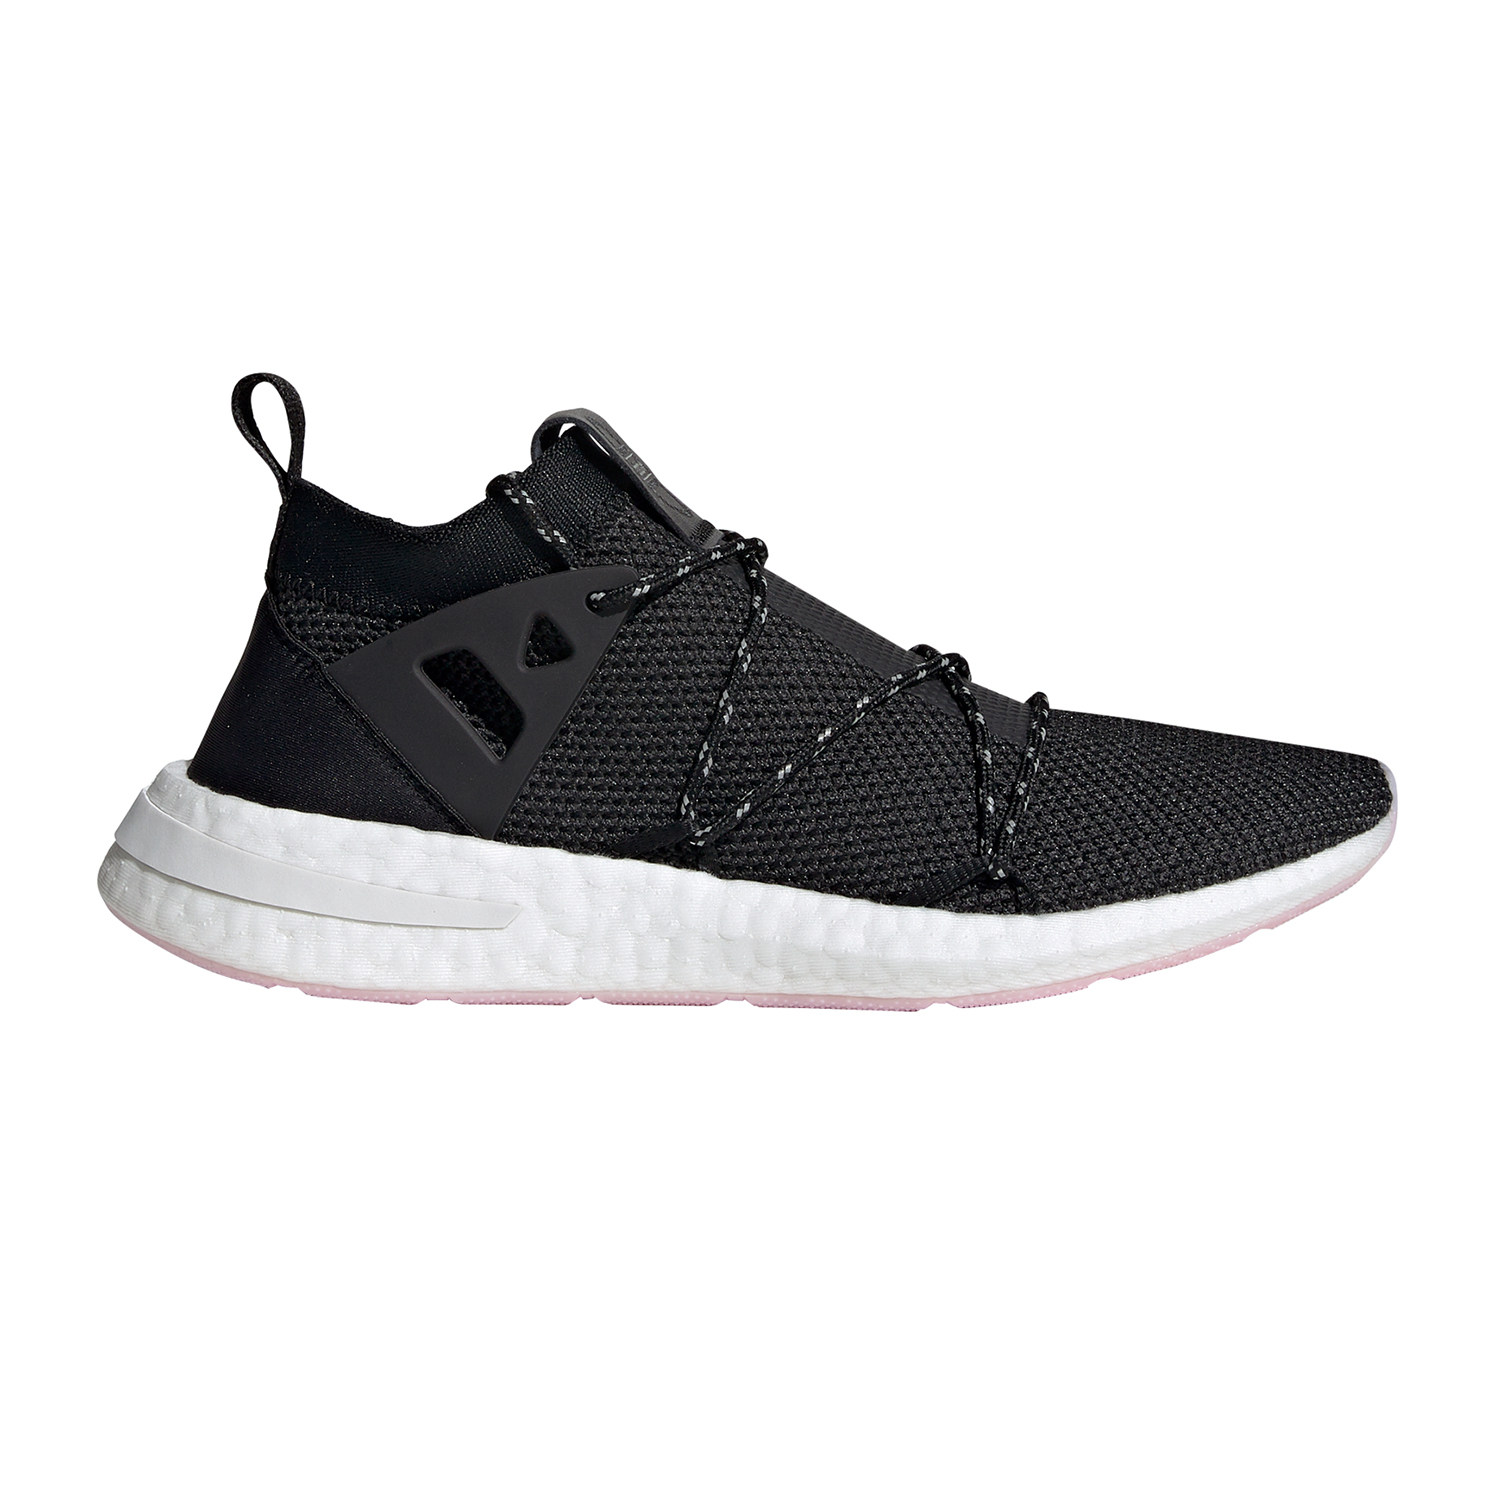 adidas Originals Arkyn Primknit W ( CG6228 ) - Roe Shoes Collection 0bd54a71d30